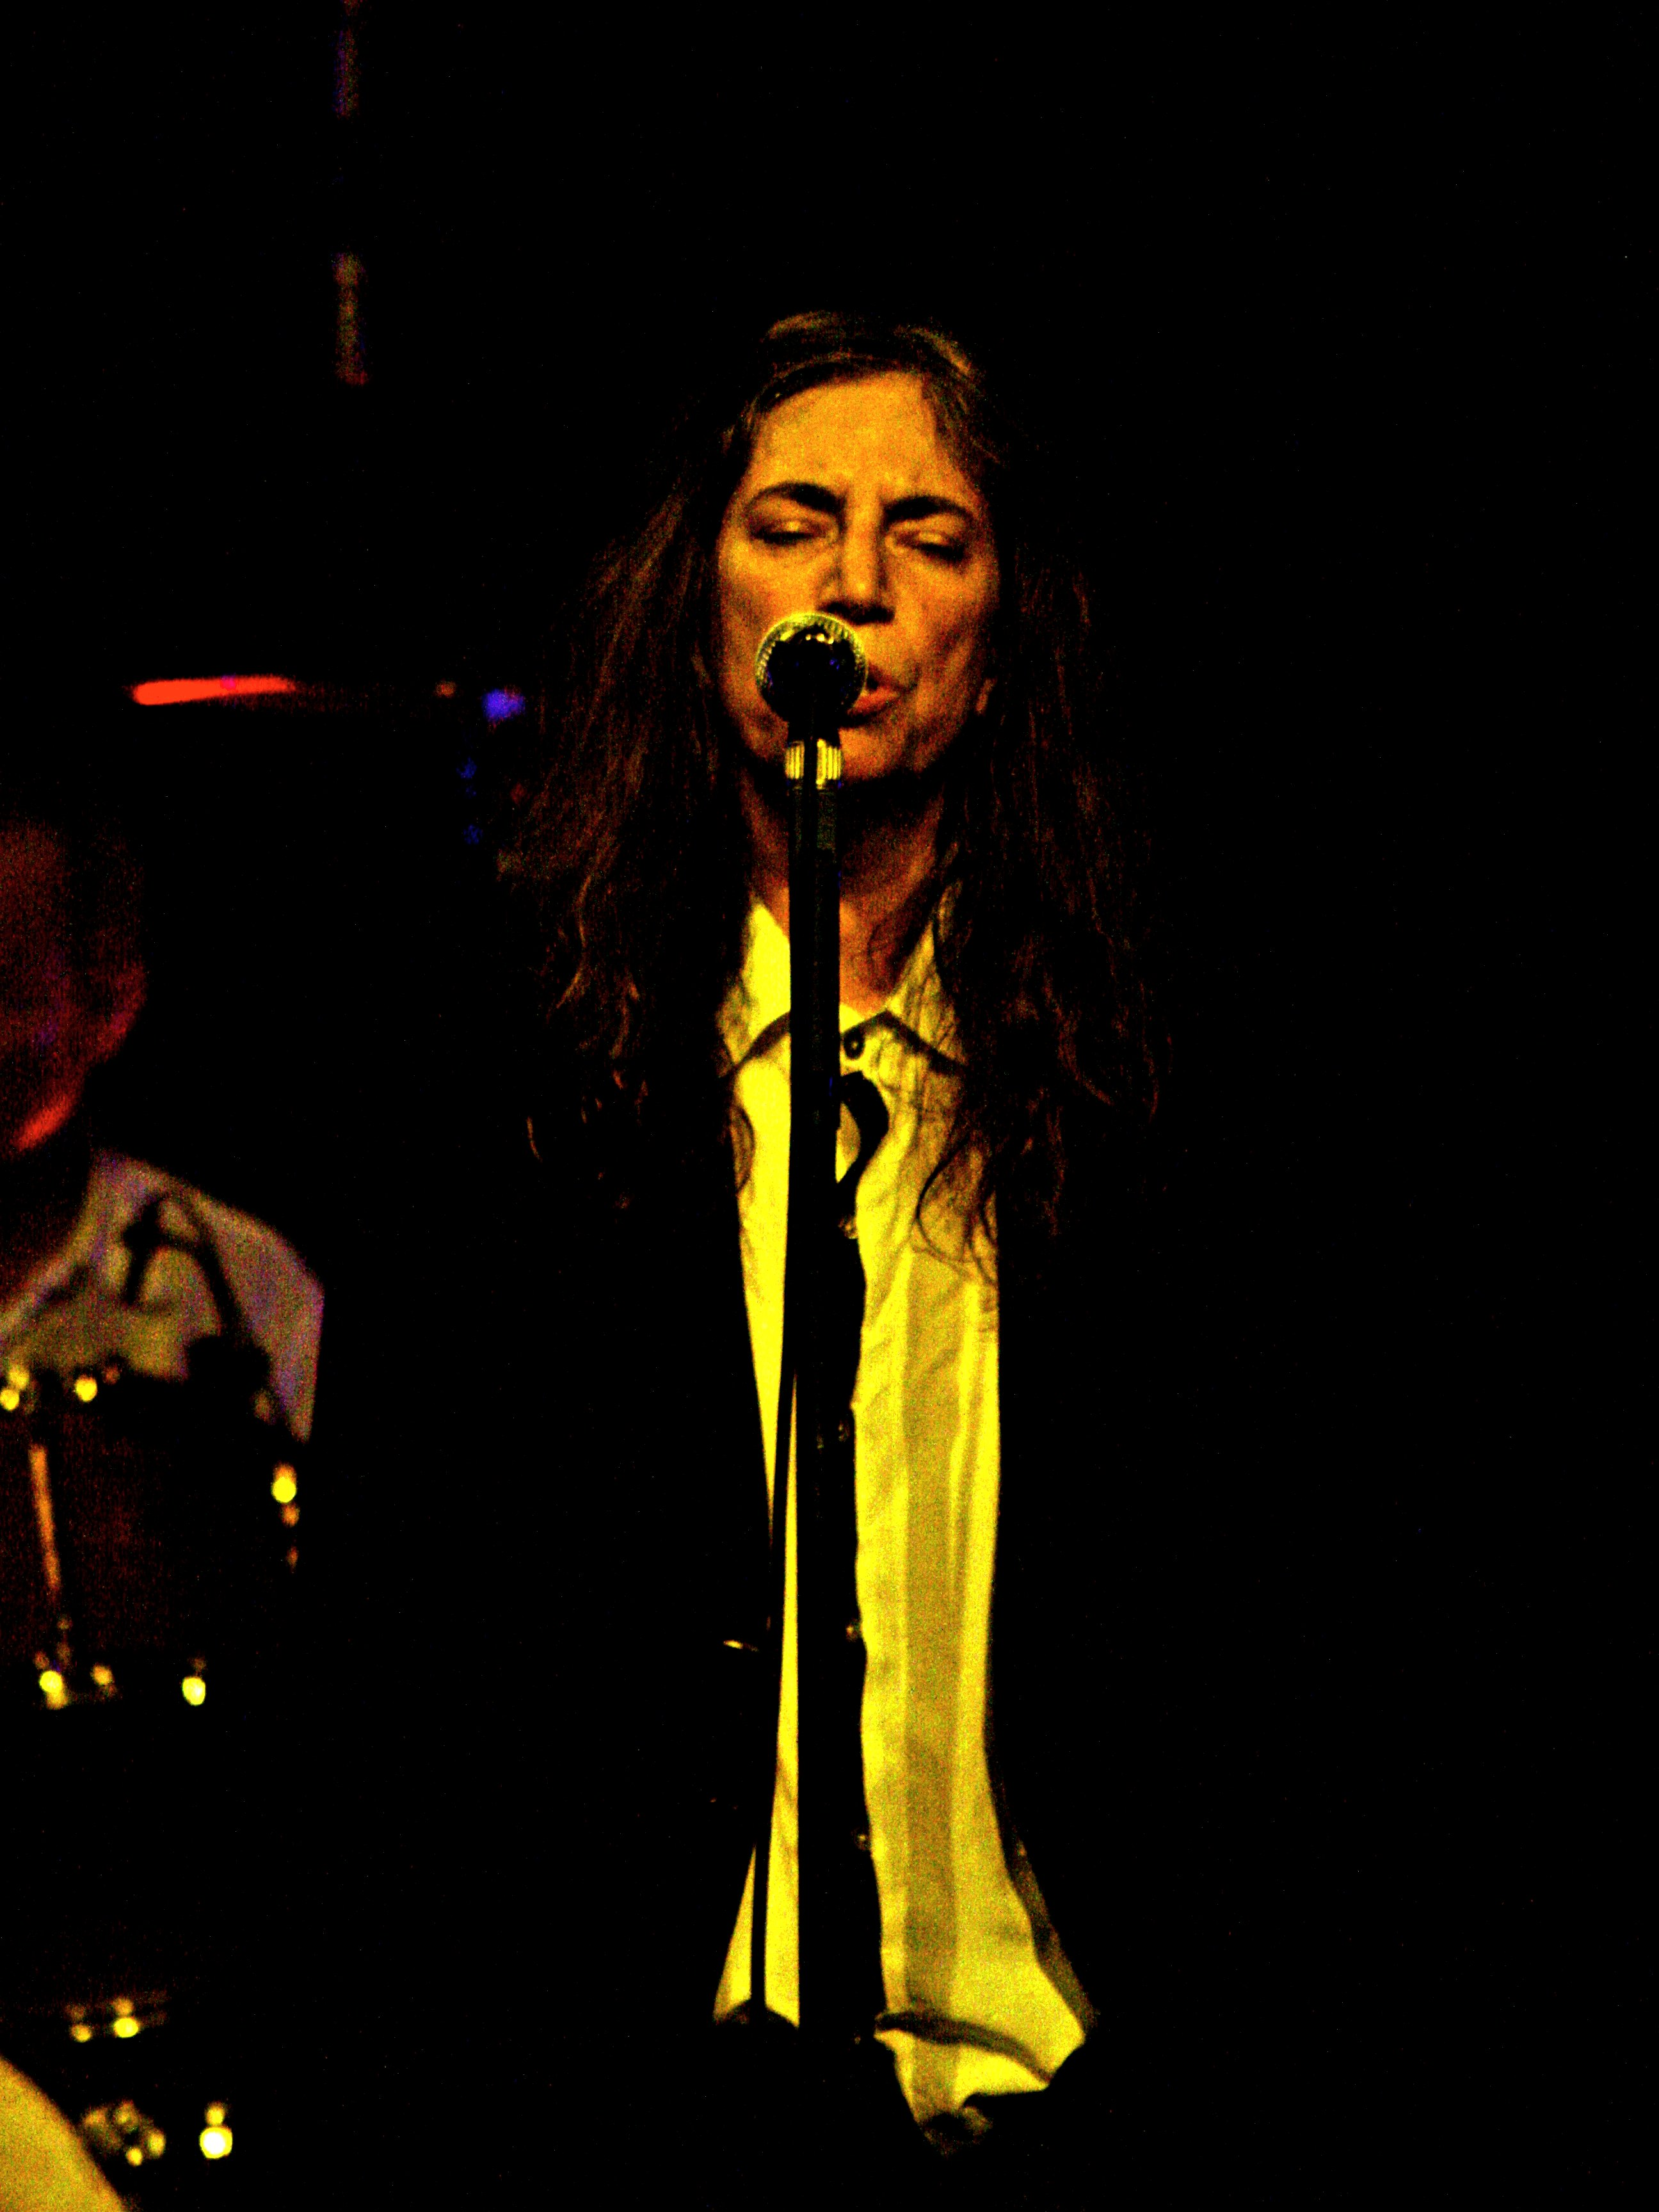 https://upload.wikimedia.org/wikipedia/commons/9/90/Patti_Smith_performing_at_Roundhouse%2C_London_%282%29.jpg